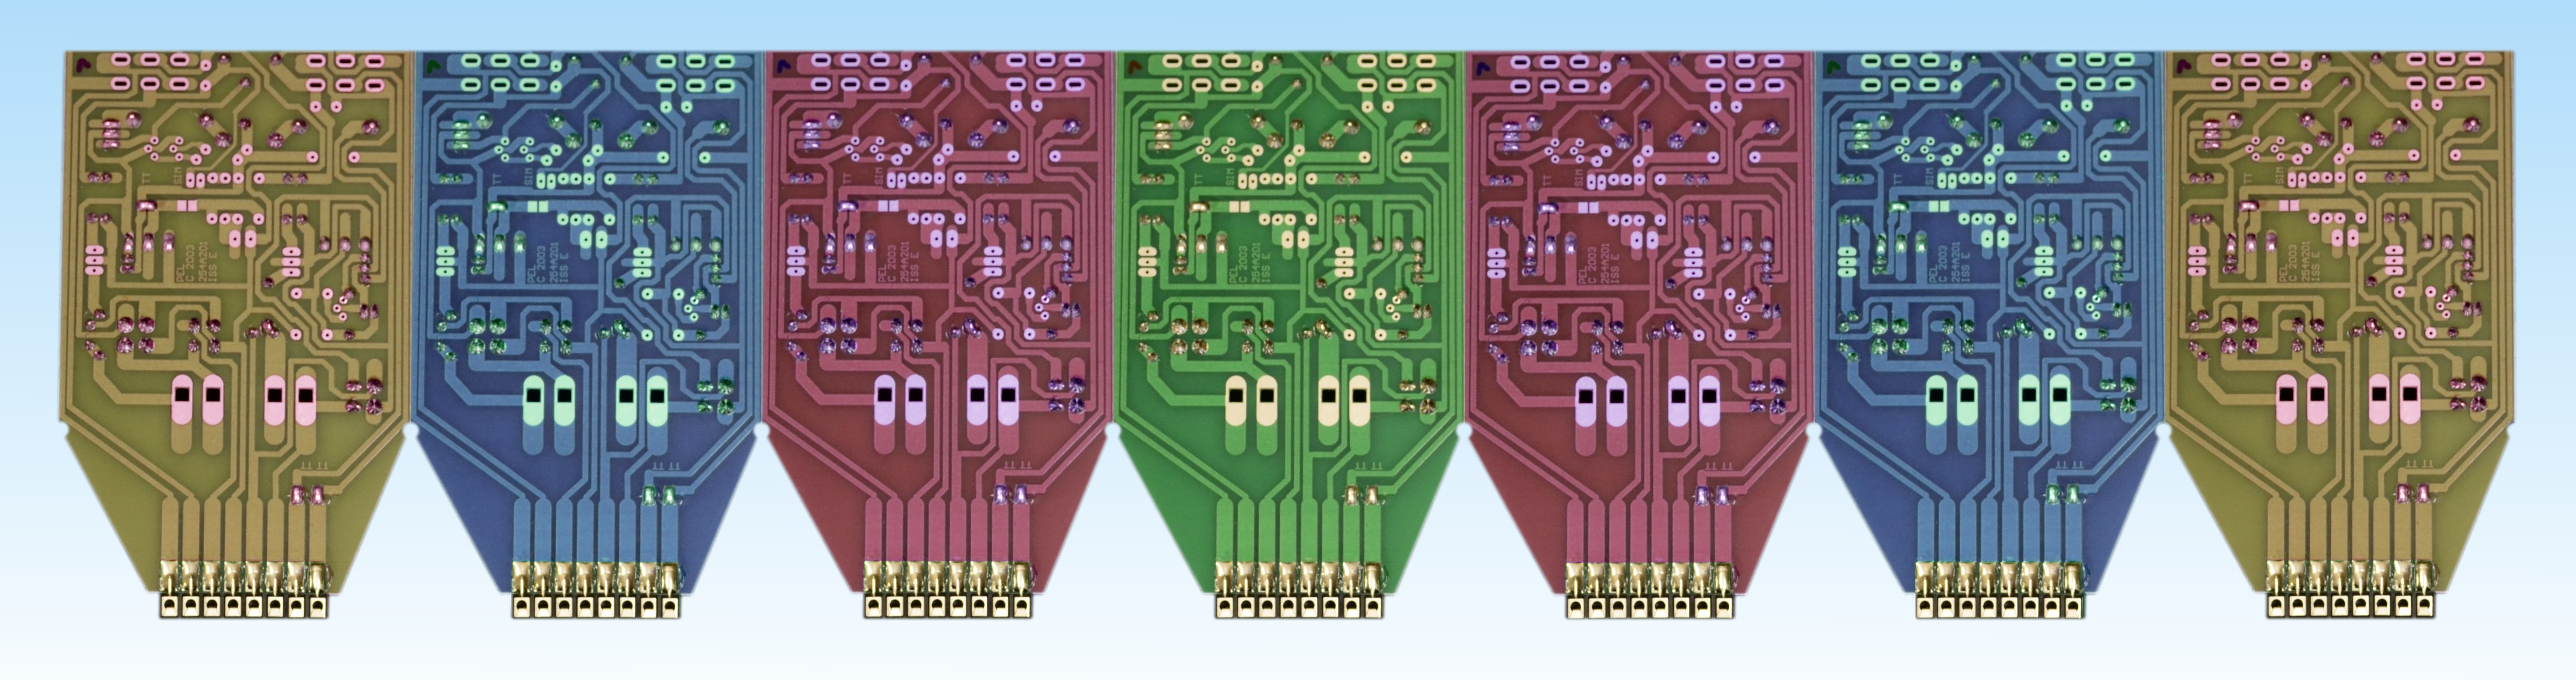 Through Hole Pcb Assembly Sub Contract Manufacturer Ponting Electronic Circuit Board Jobs Manufacture After All Individual Pcbs Are Fully Tested On Premises Often With Equipment That We Have Designed And Manufactured Ourselves